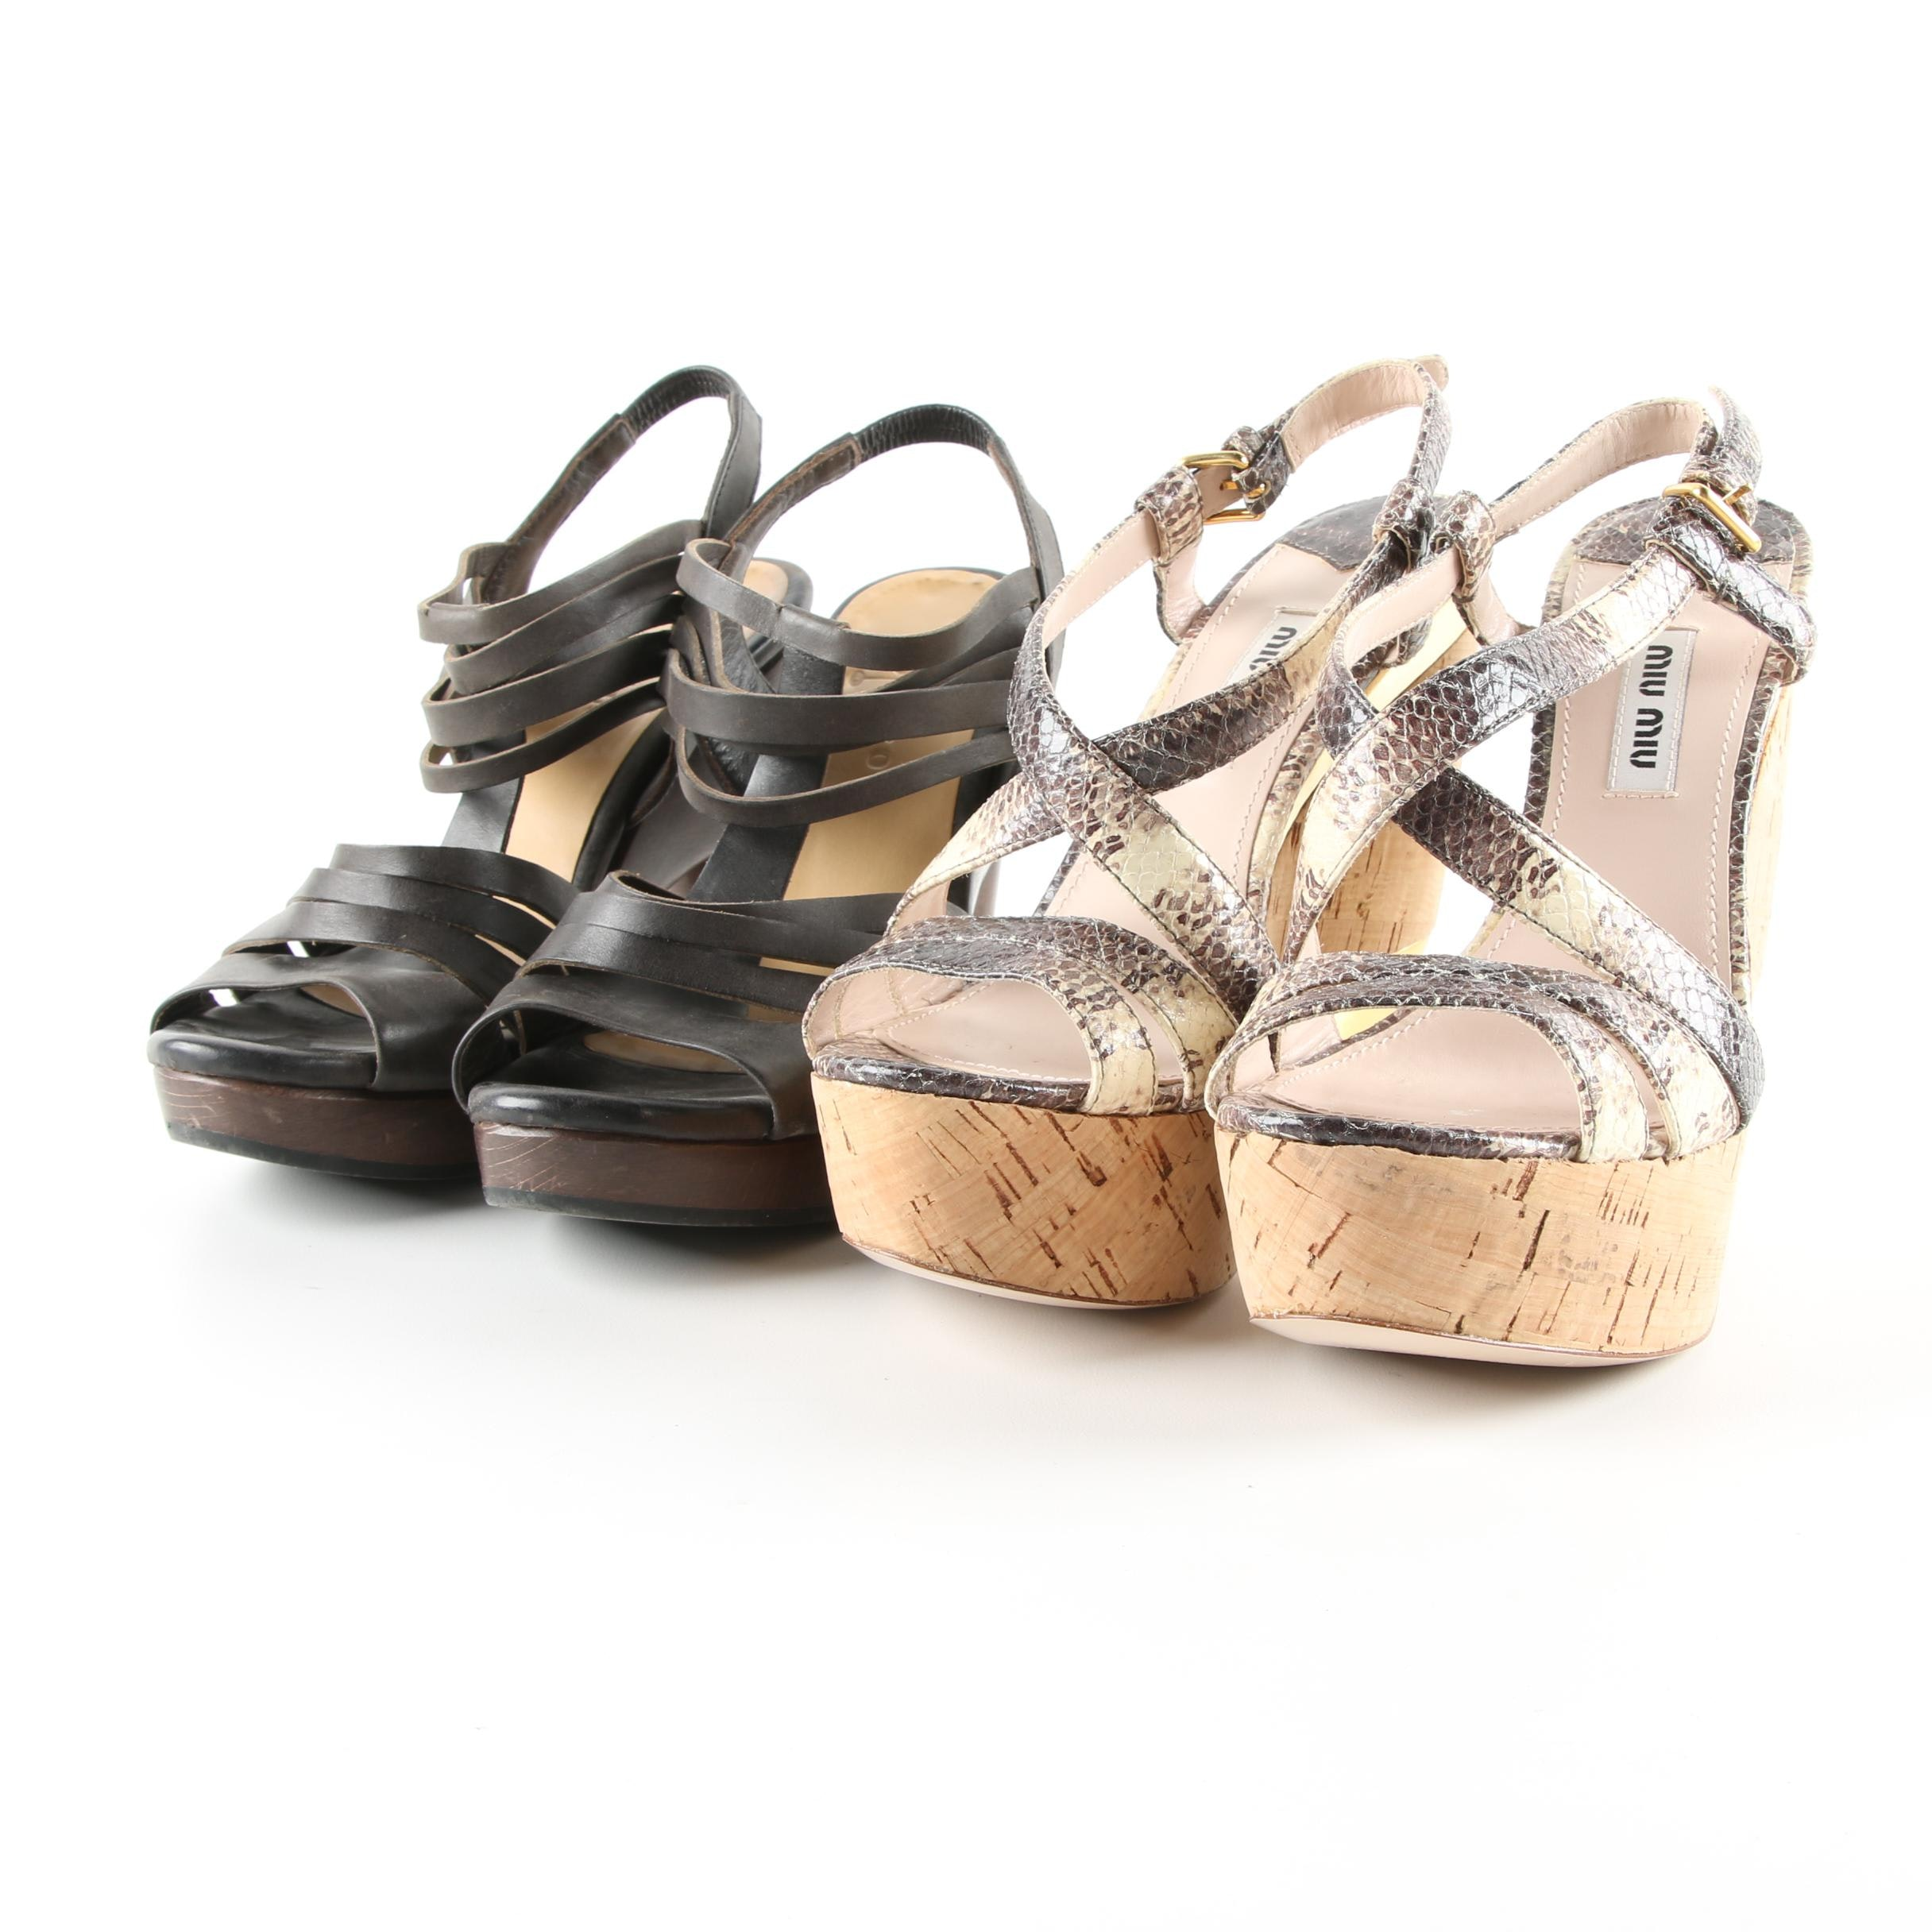 Miu Miu Python and Cork and Coclico Leather and Wood Platform Sandals